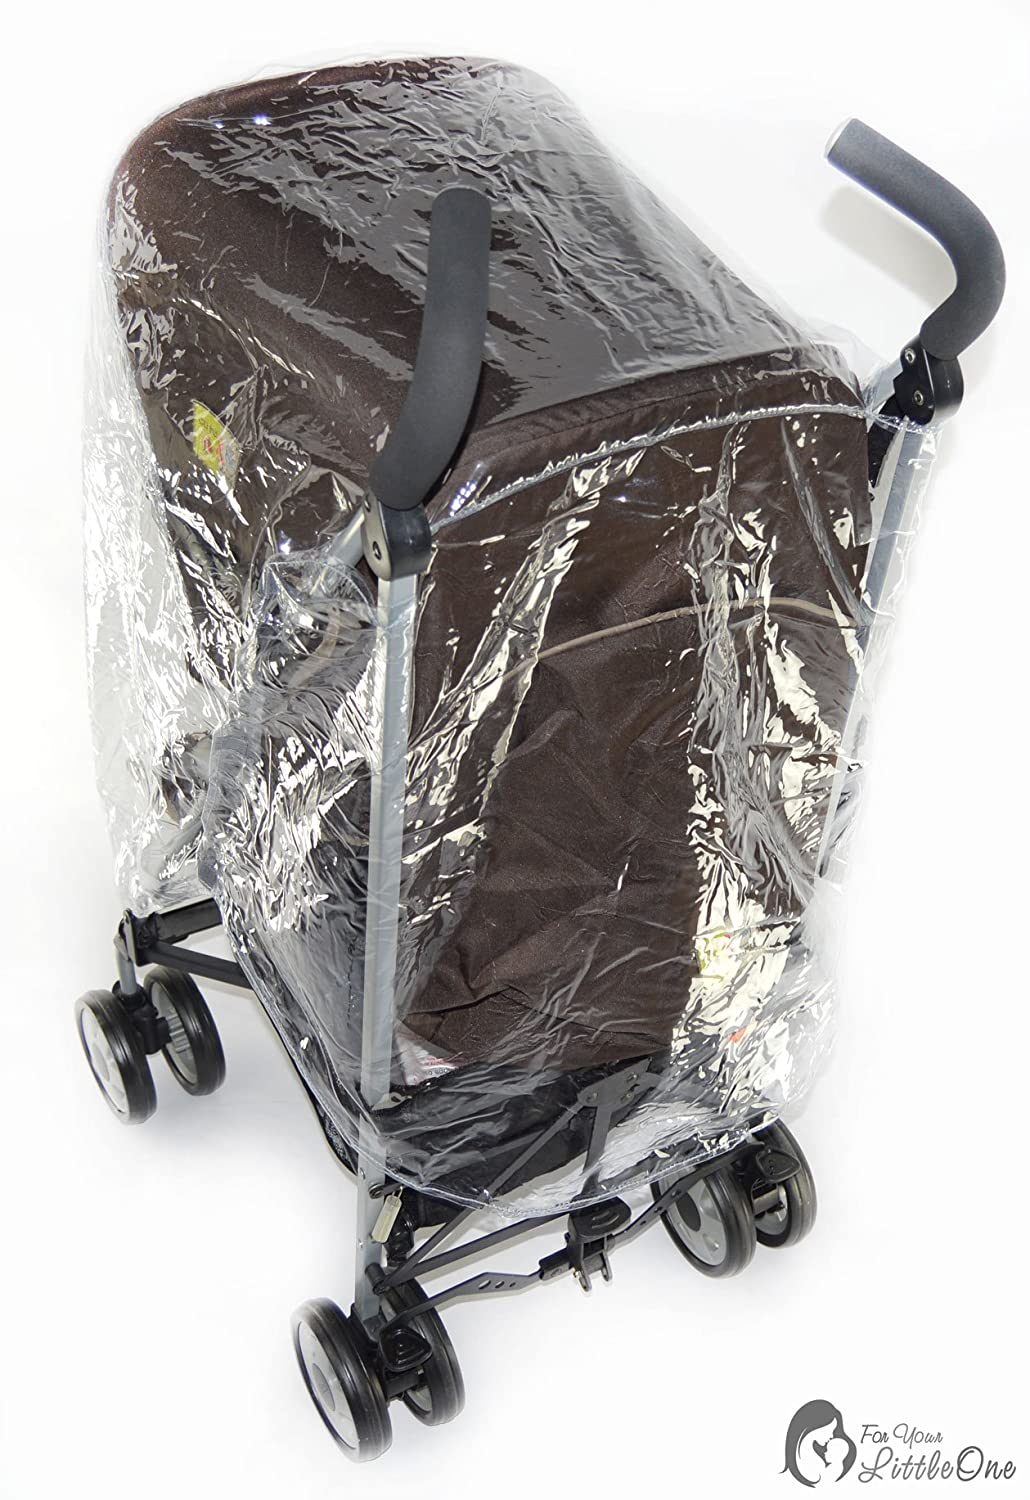 142 New Raincover For Hauck Shopper Buggy